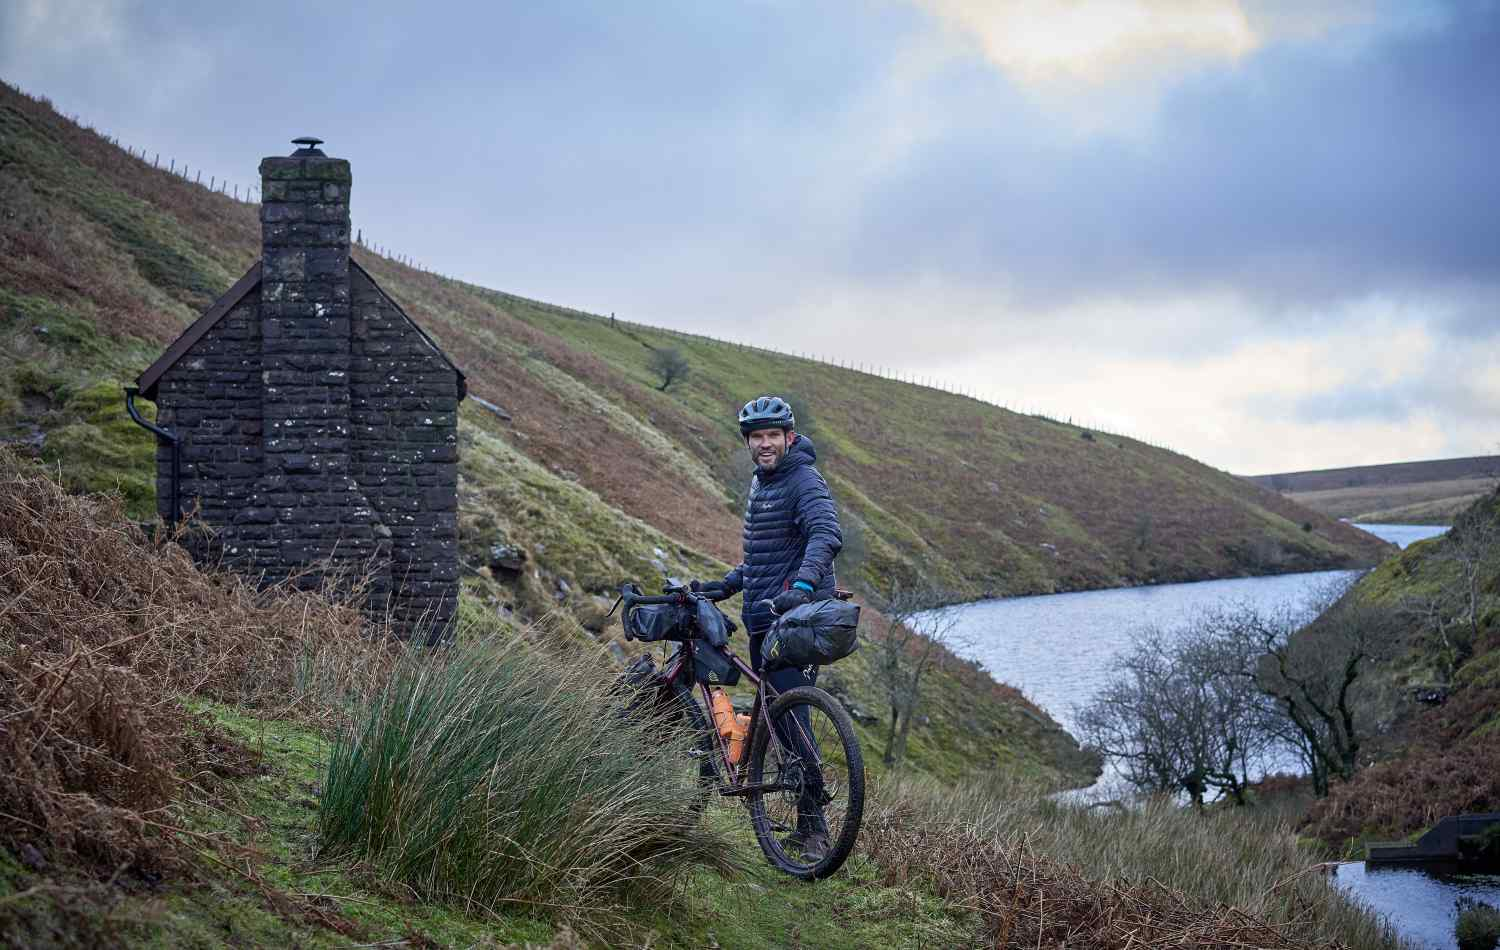 Marcus stands with his bike by a bothy next to the river he camped by